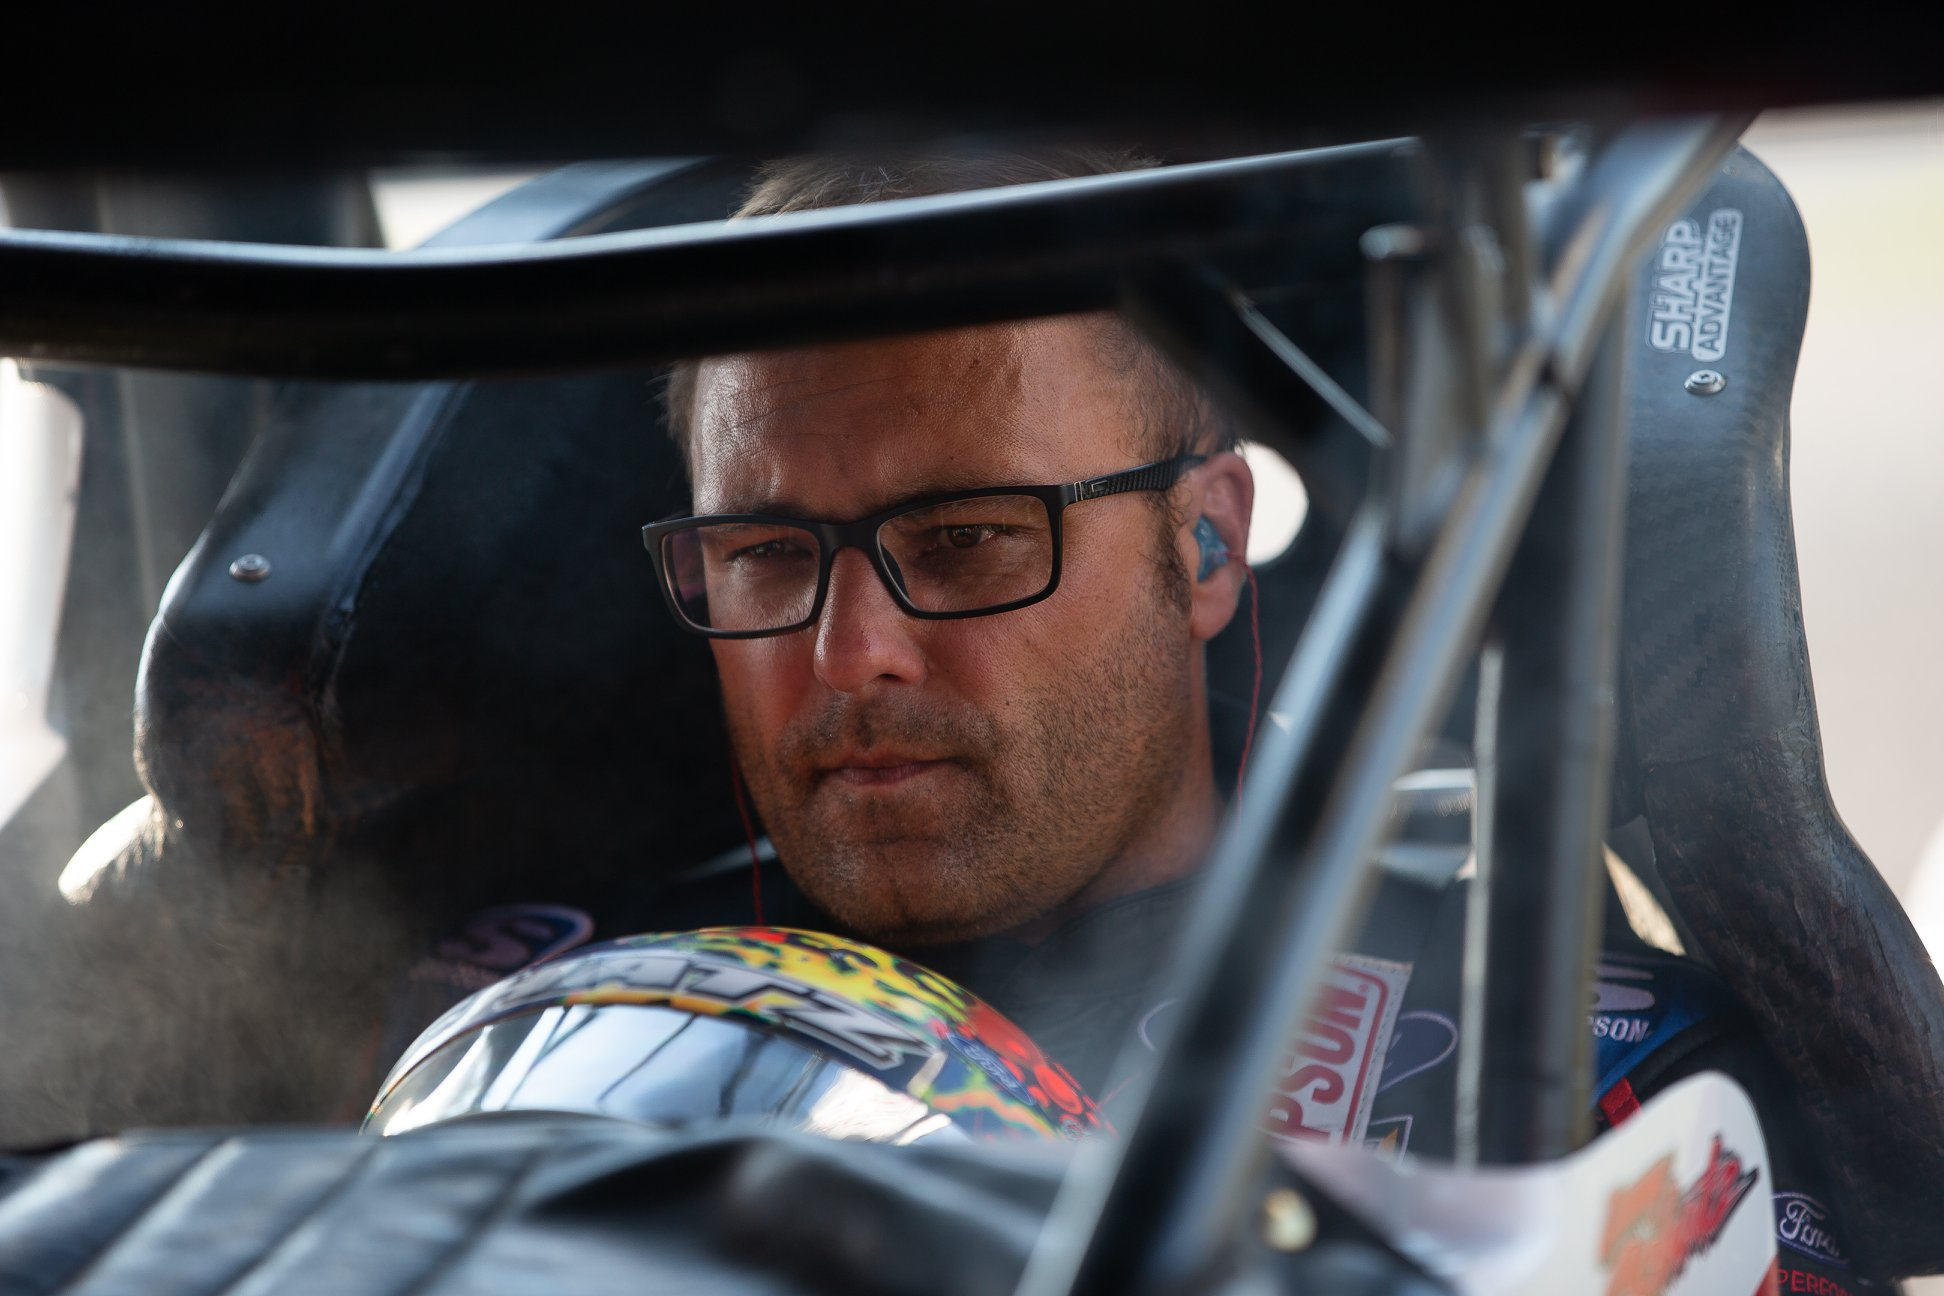 donny schatz, world of outlaws, spieker promotions, trent gower photography